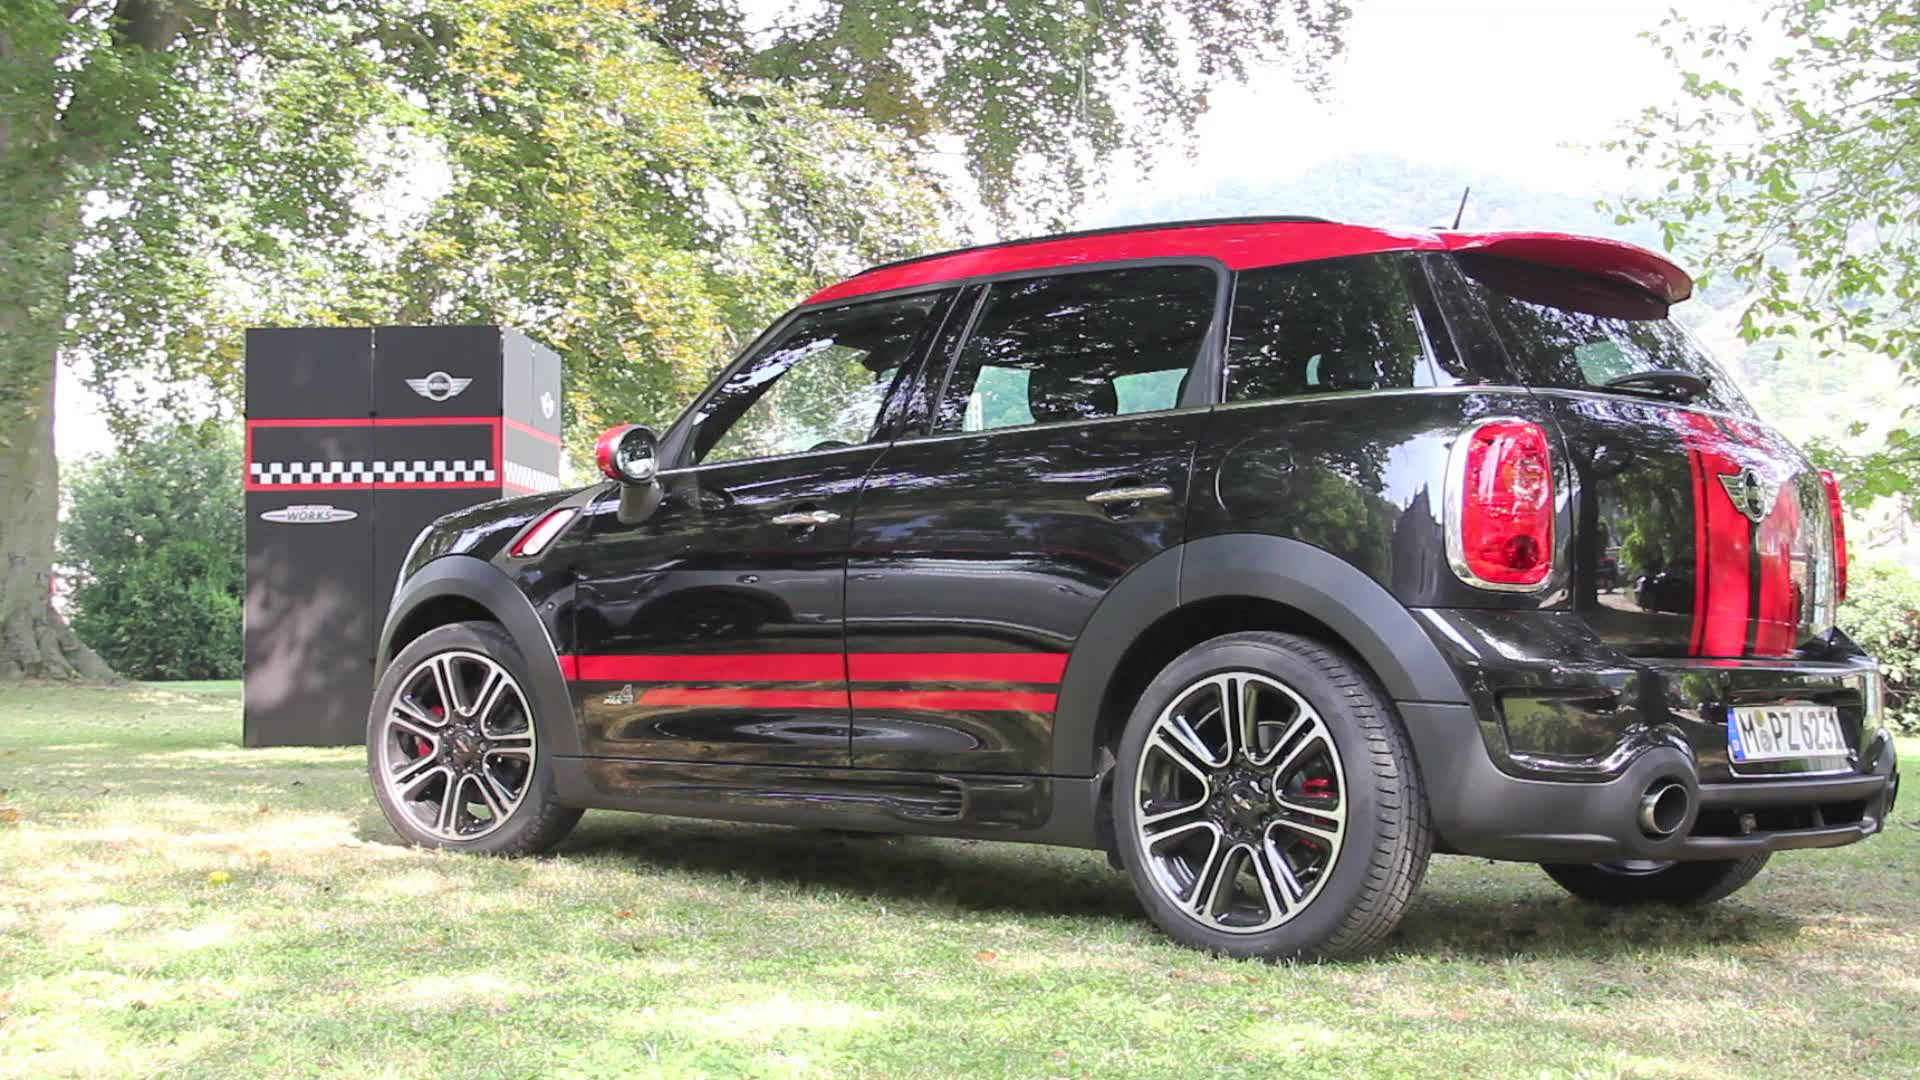 Autoblog Short Cuts: 2013 Mini Countryman JCW